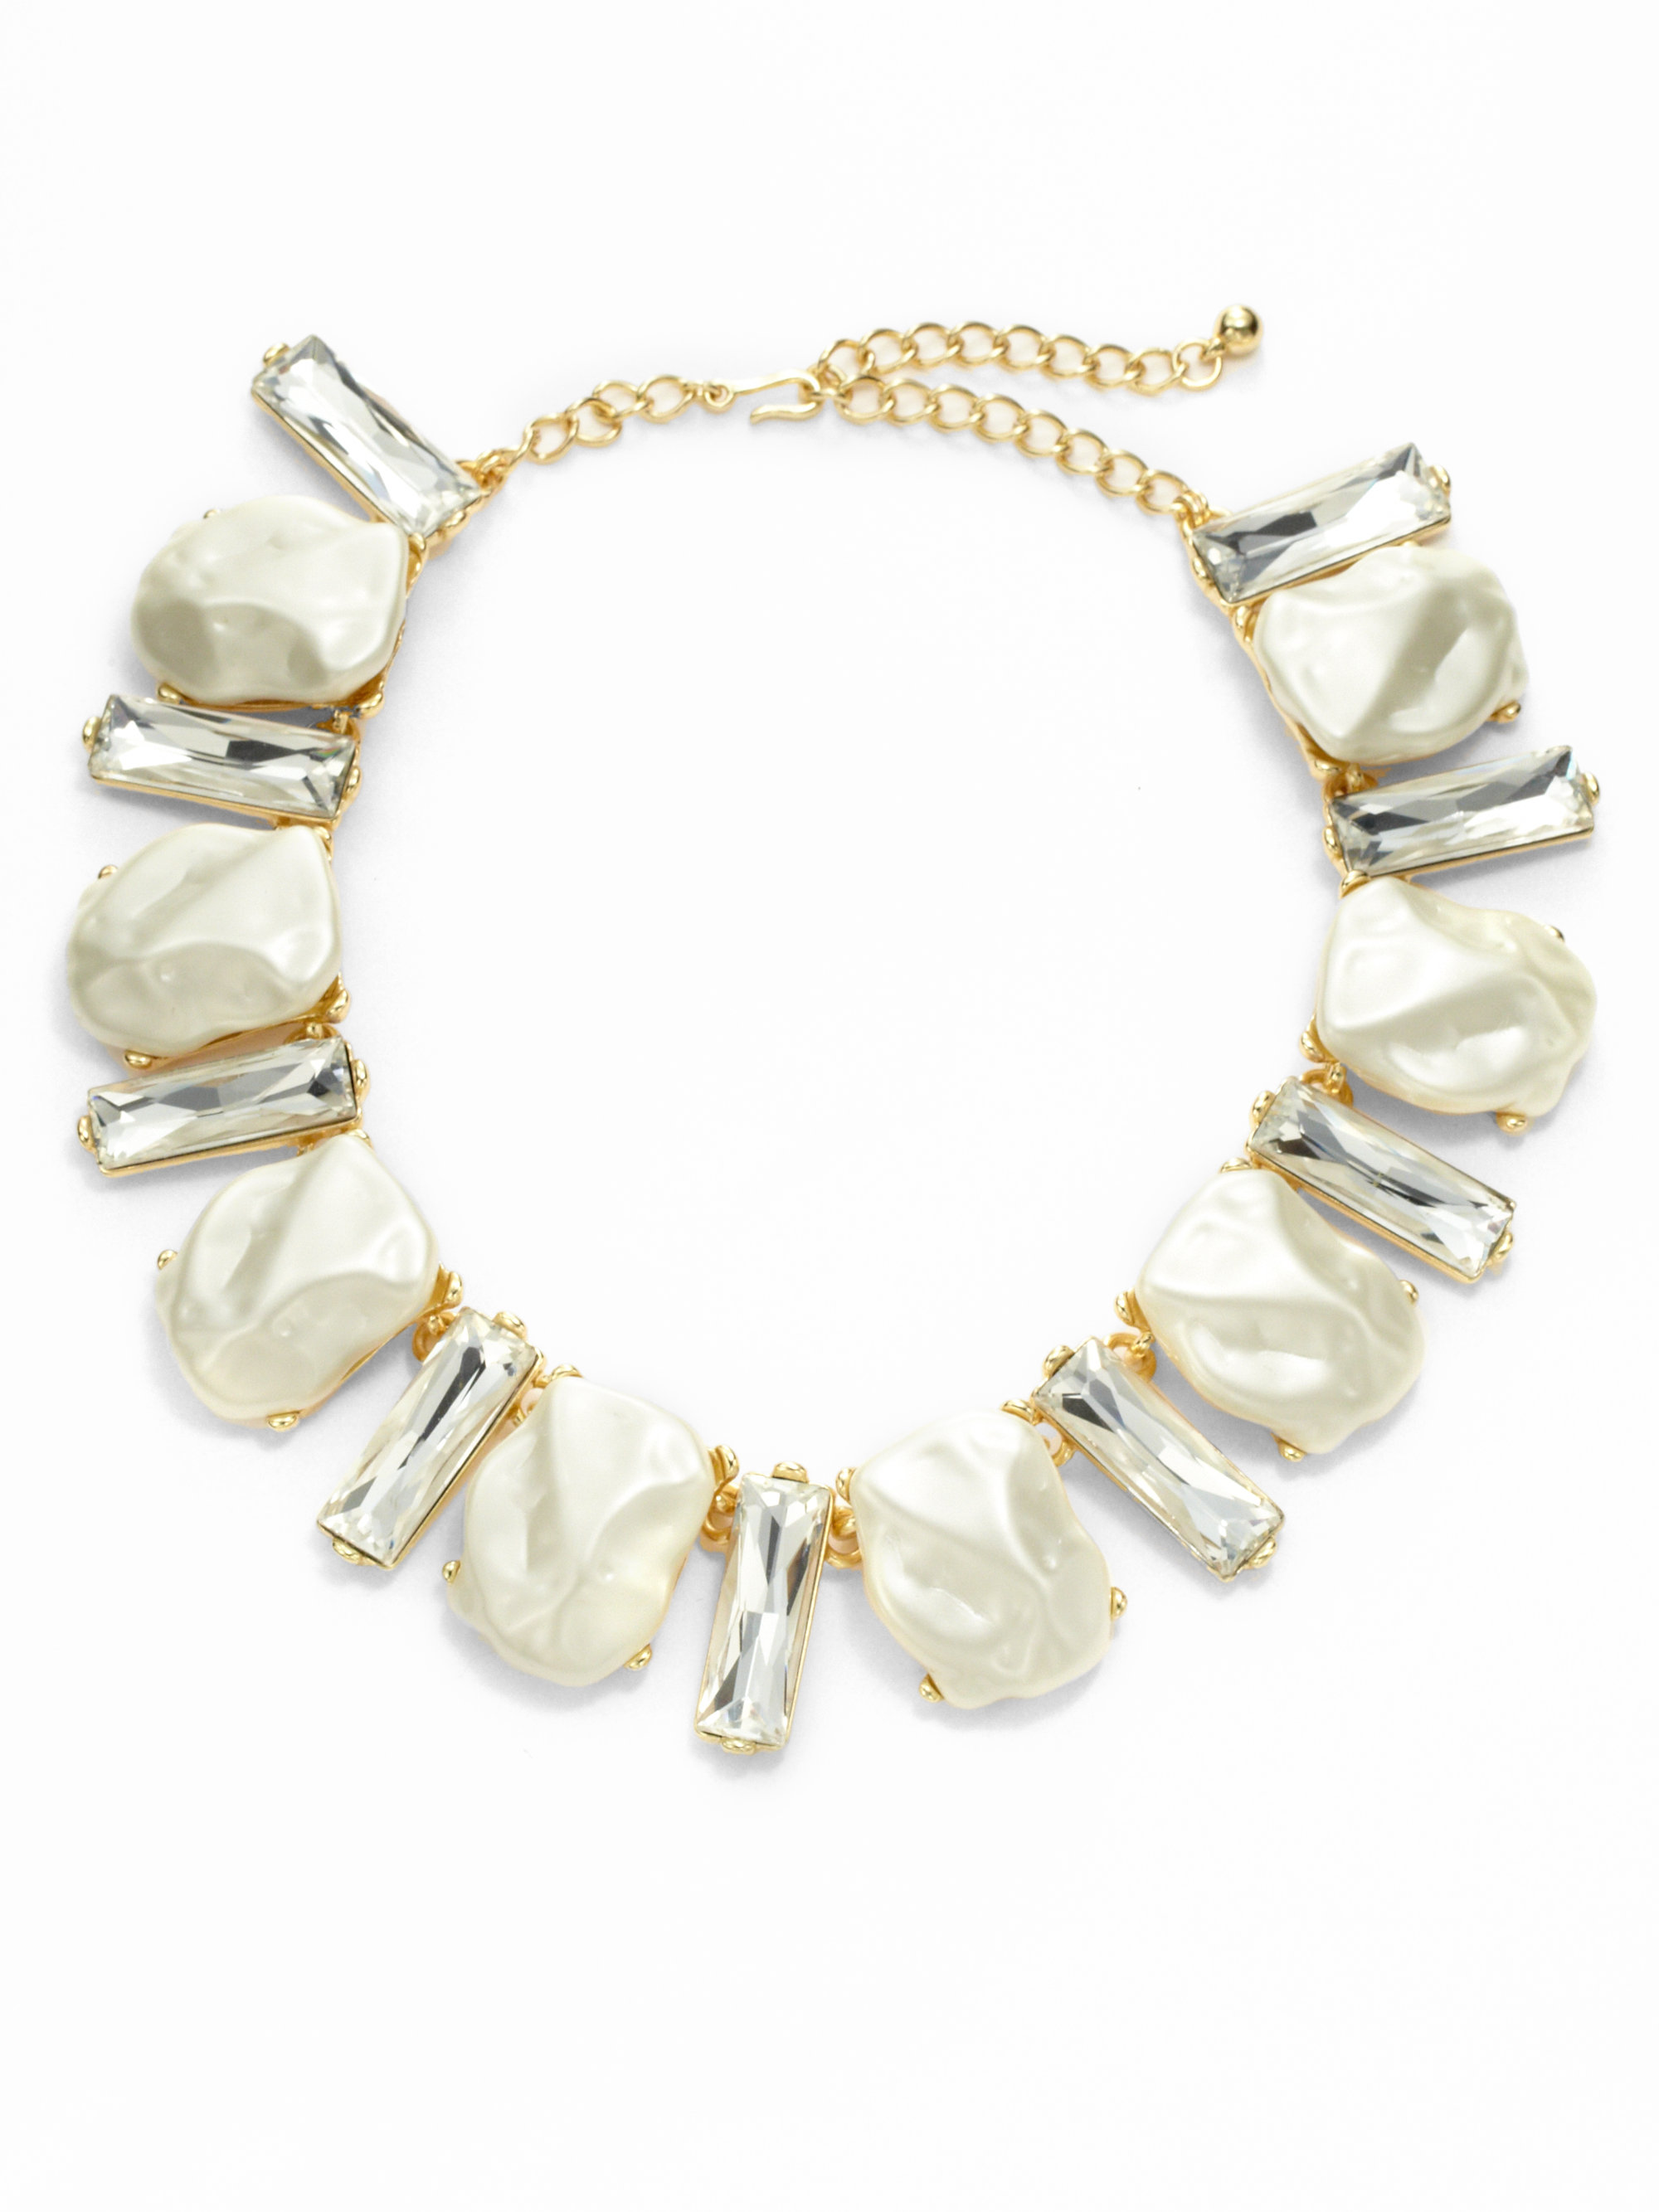 Womens Crystal Charm Choker Kenneth Jay Lane dNgW7